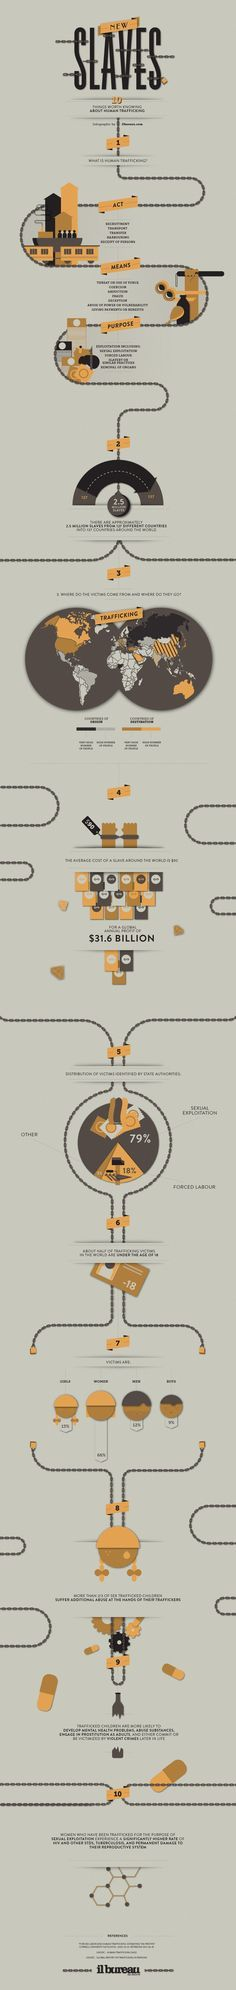 10 Things Worth Knowing About Human Trafficking #infographic #HumanTrafficking #HumanRights